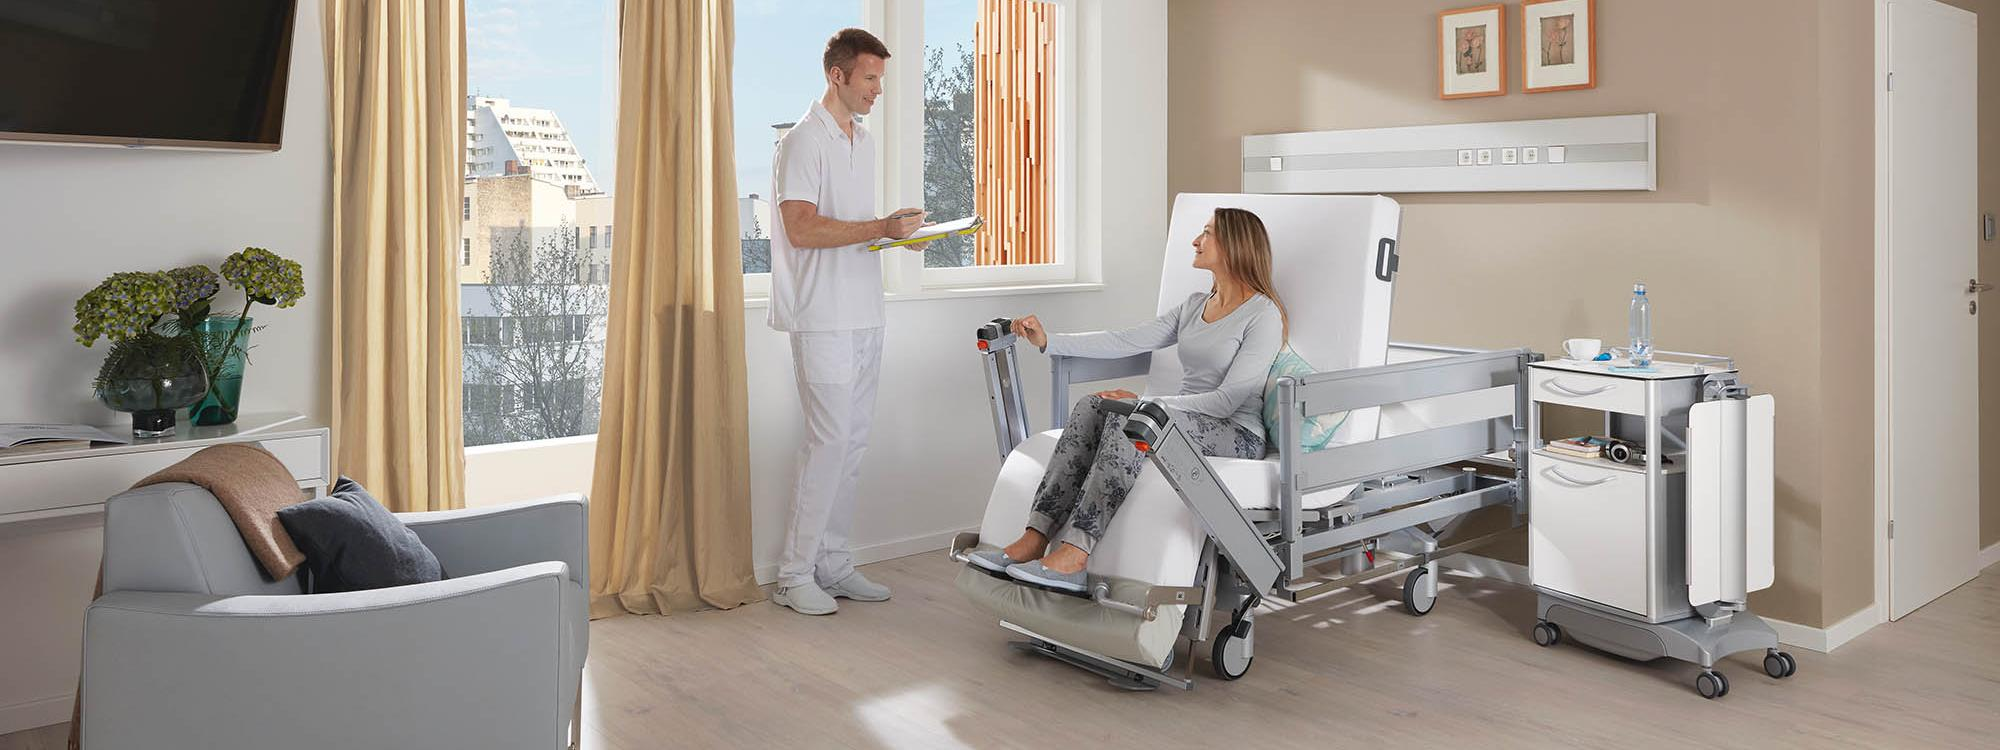 Comfort in the elective service unit with the Vertica clinic mobilisation bed